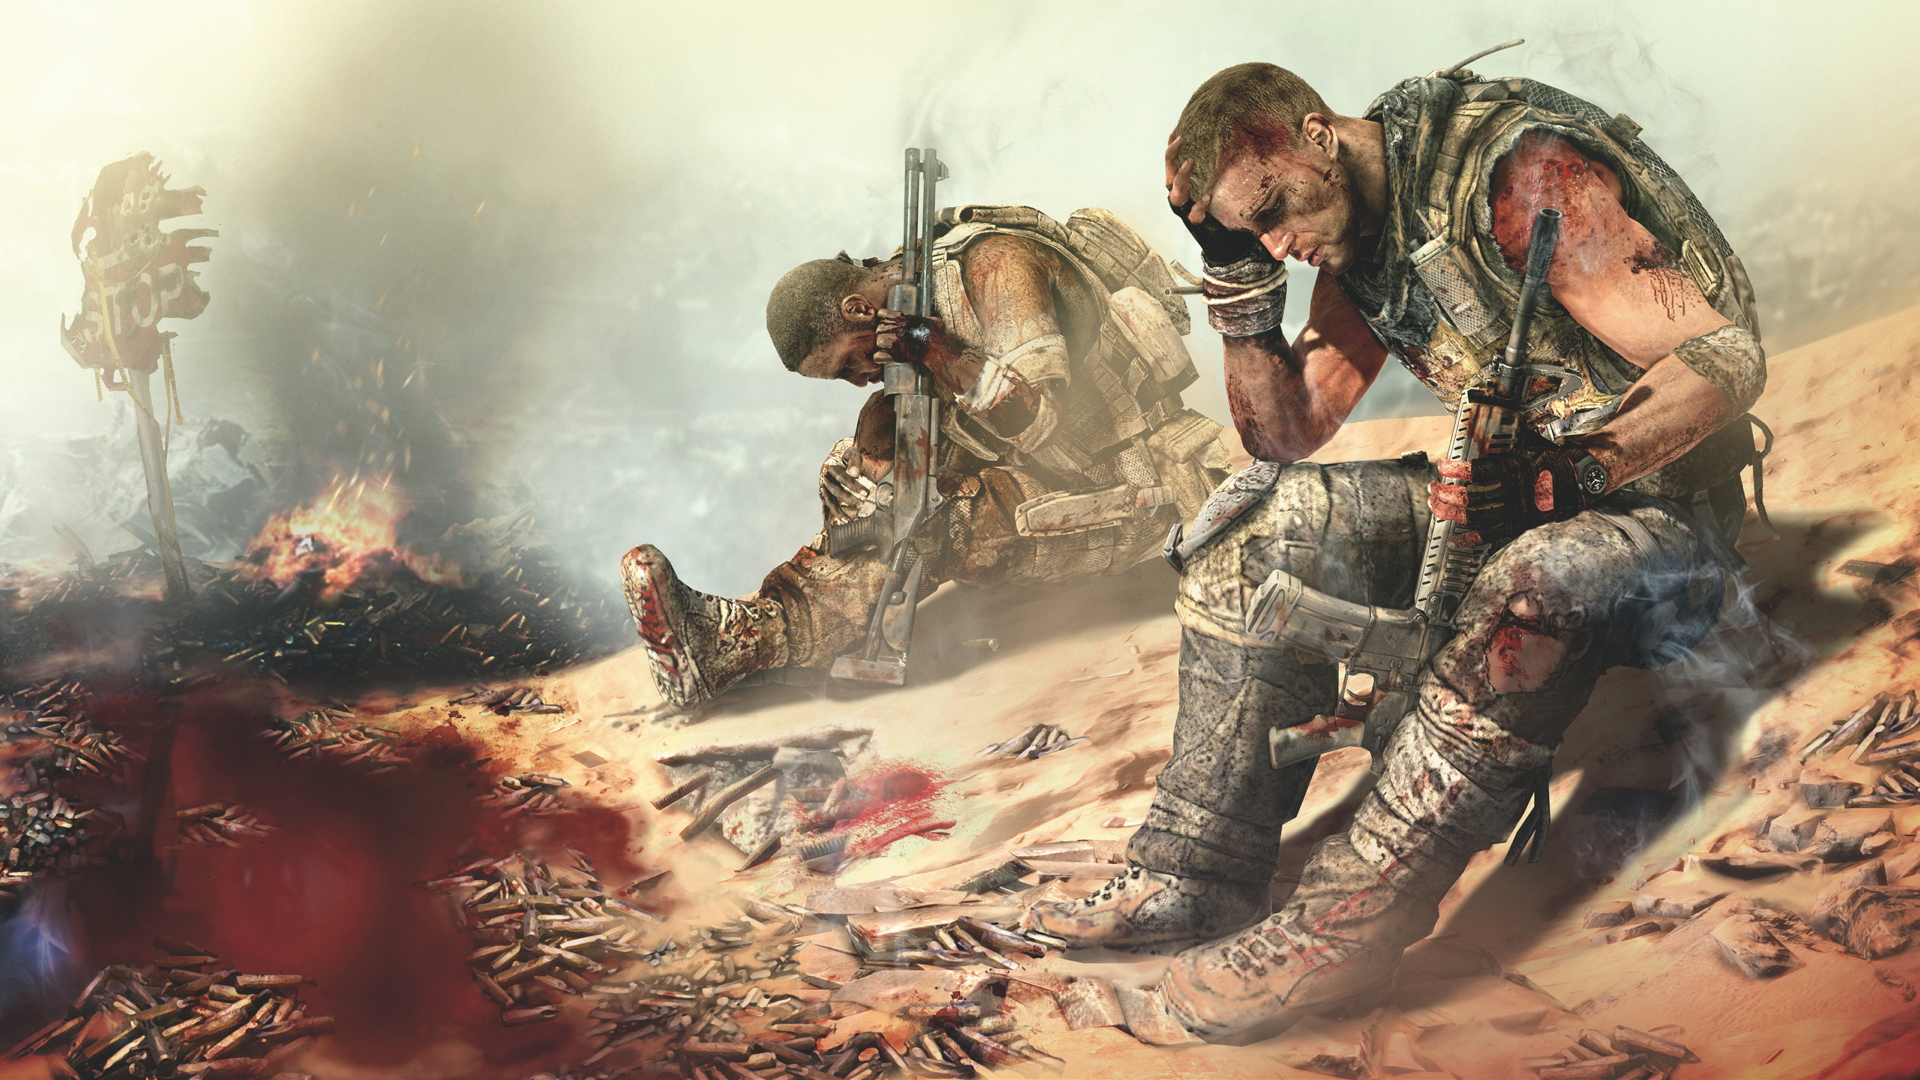 Taking an uncomfortable, thought-provoking journey into the heart of  darkness with Spec Ops: The Line | GamesRadar+